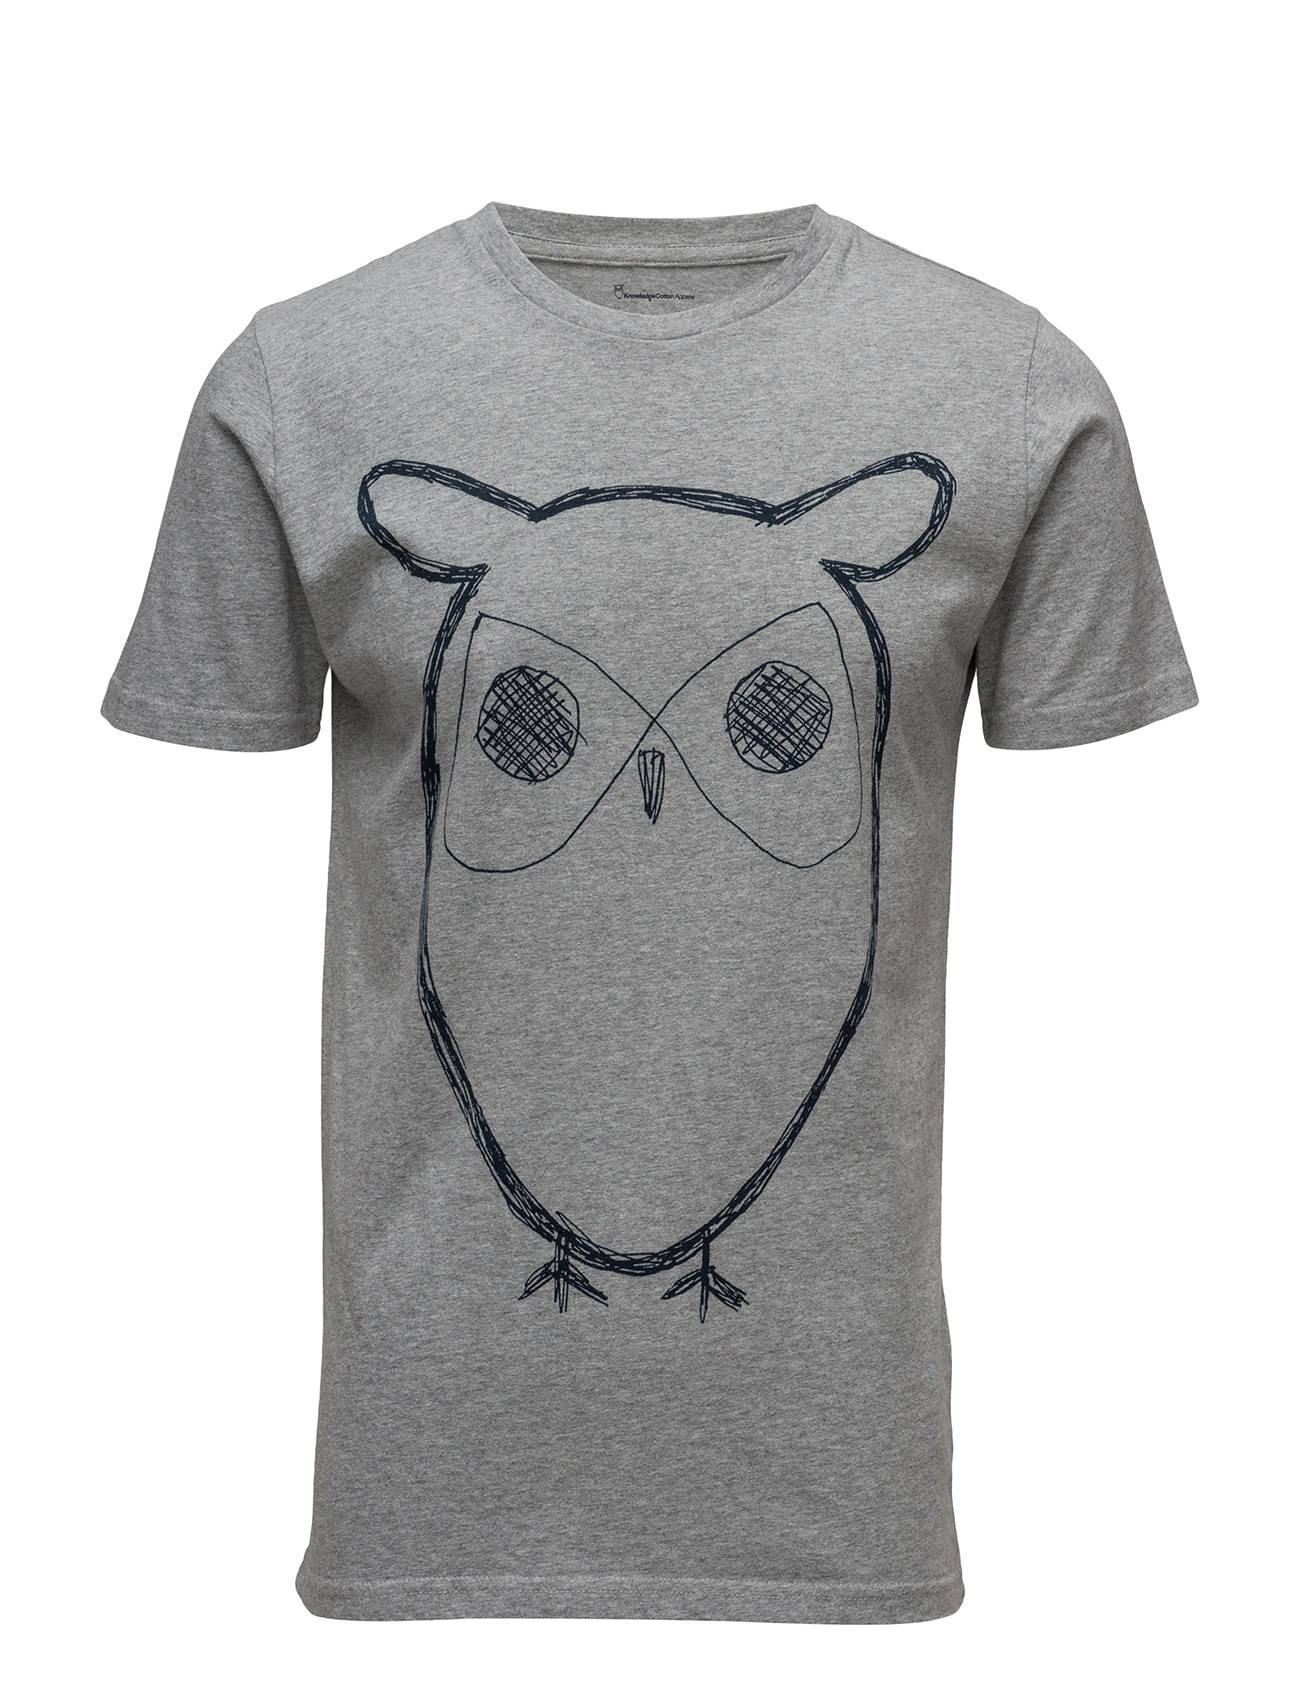 Knowledge Cotton Apparel Single Jersey With Owl Print - Gots